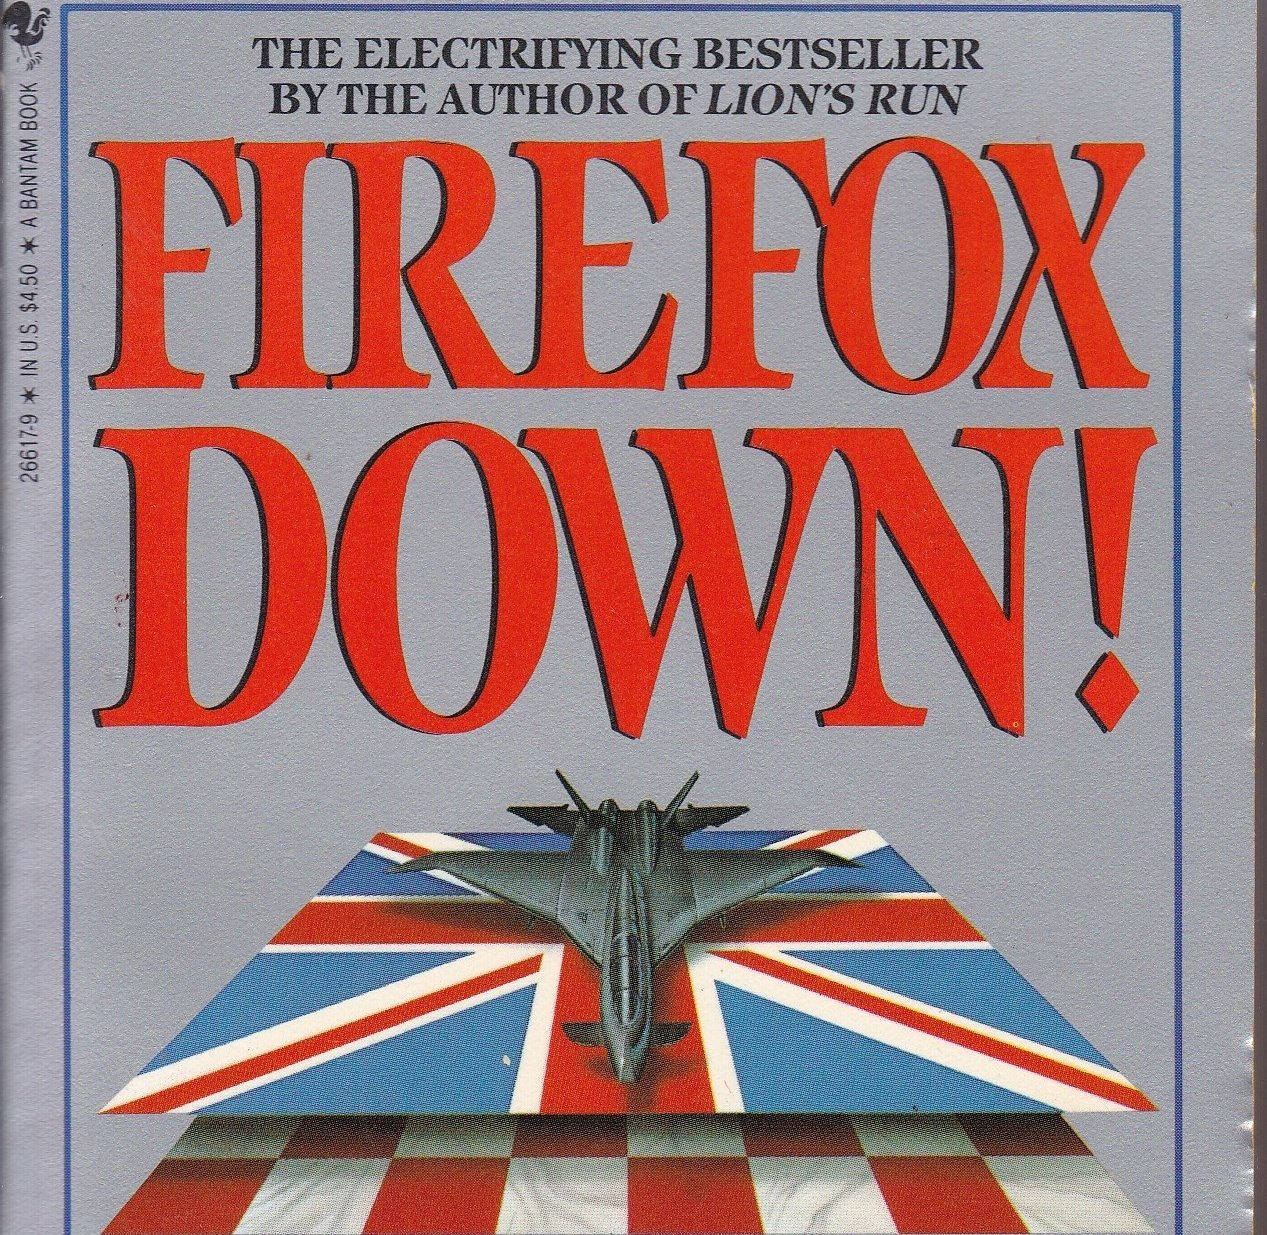 91LQevO6WqL e1624962433557 20 Things You Probably Didn't Know About Clint Eastwood's 1982 Film Firefox